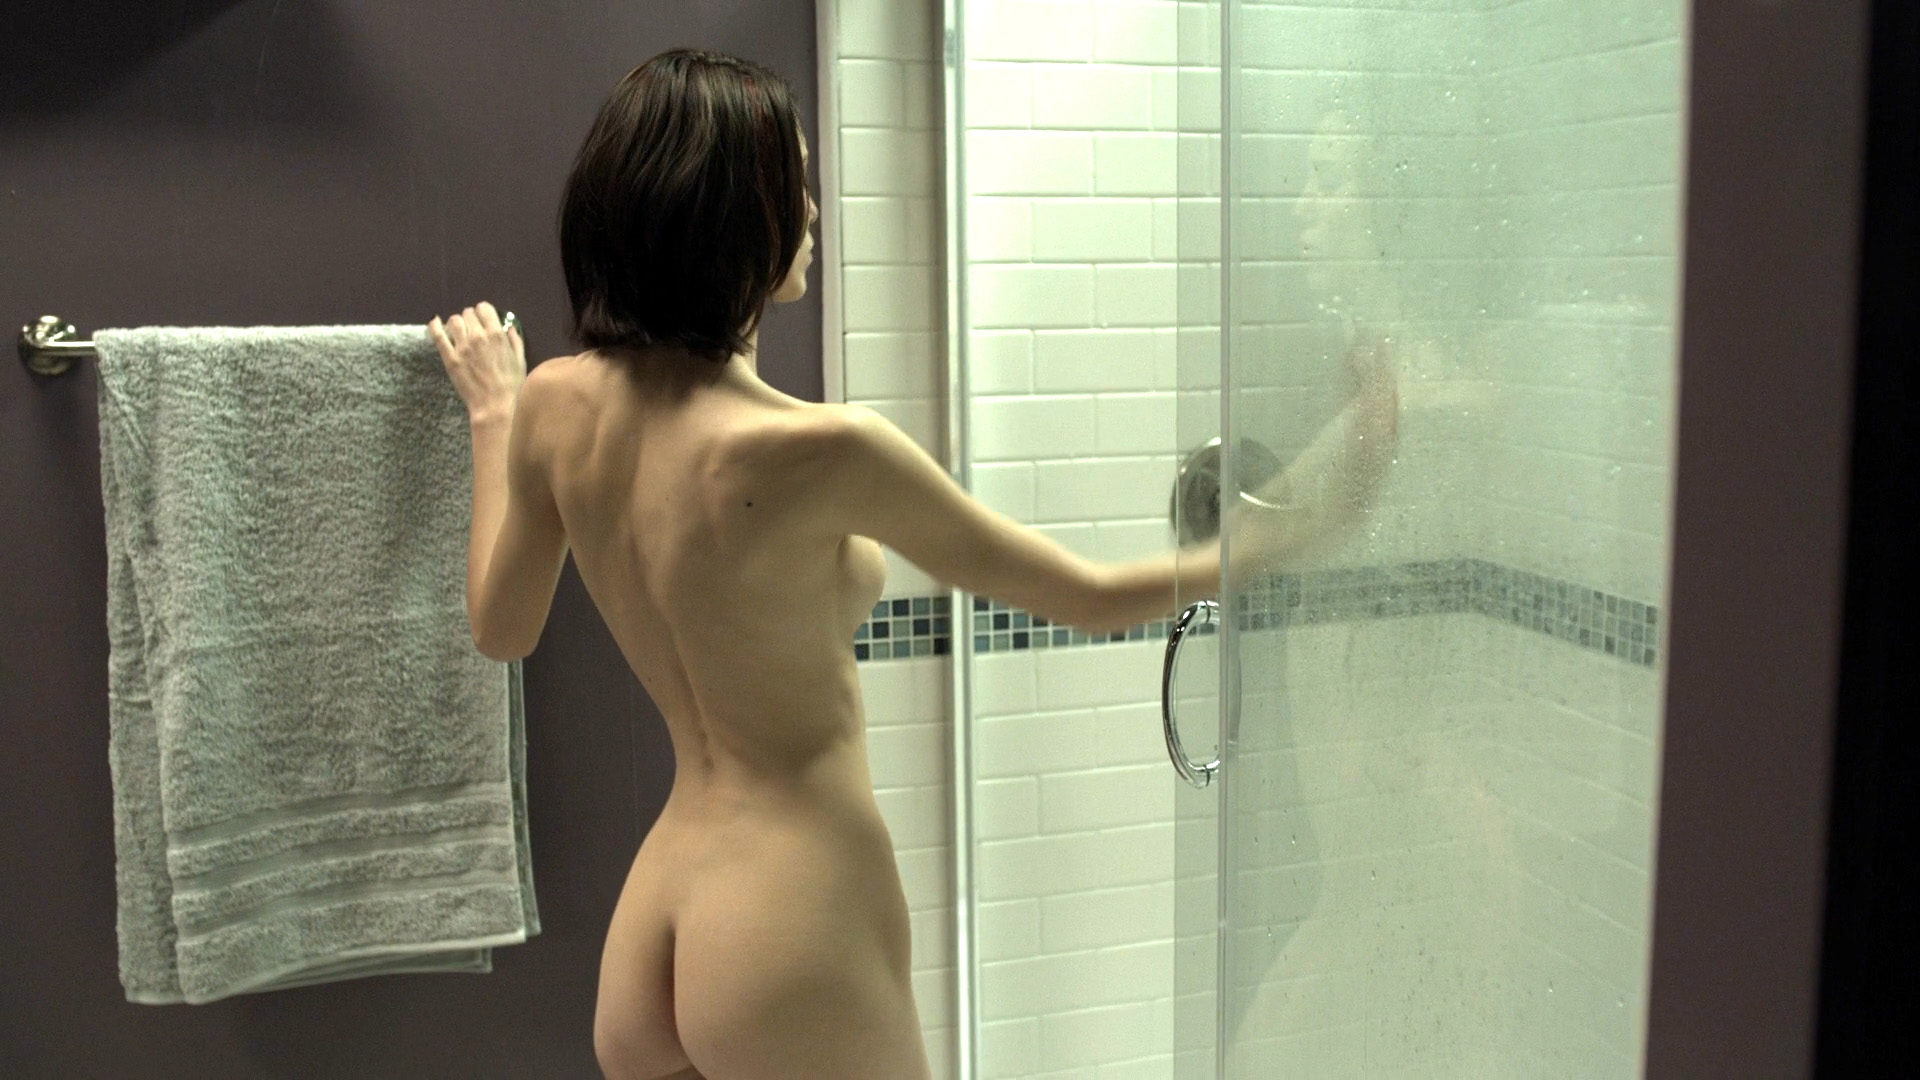 Jena romano shower scene - 2 2